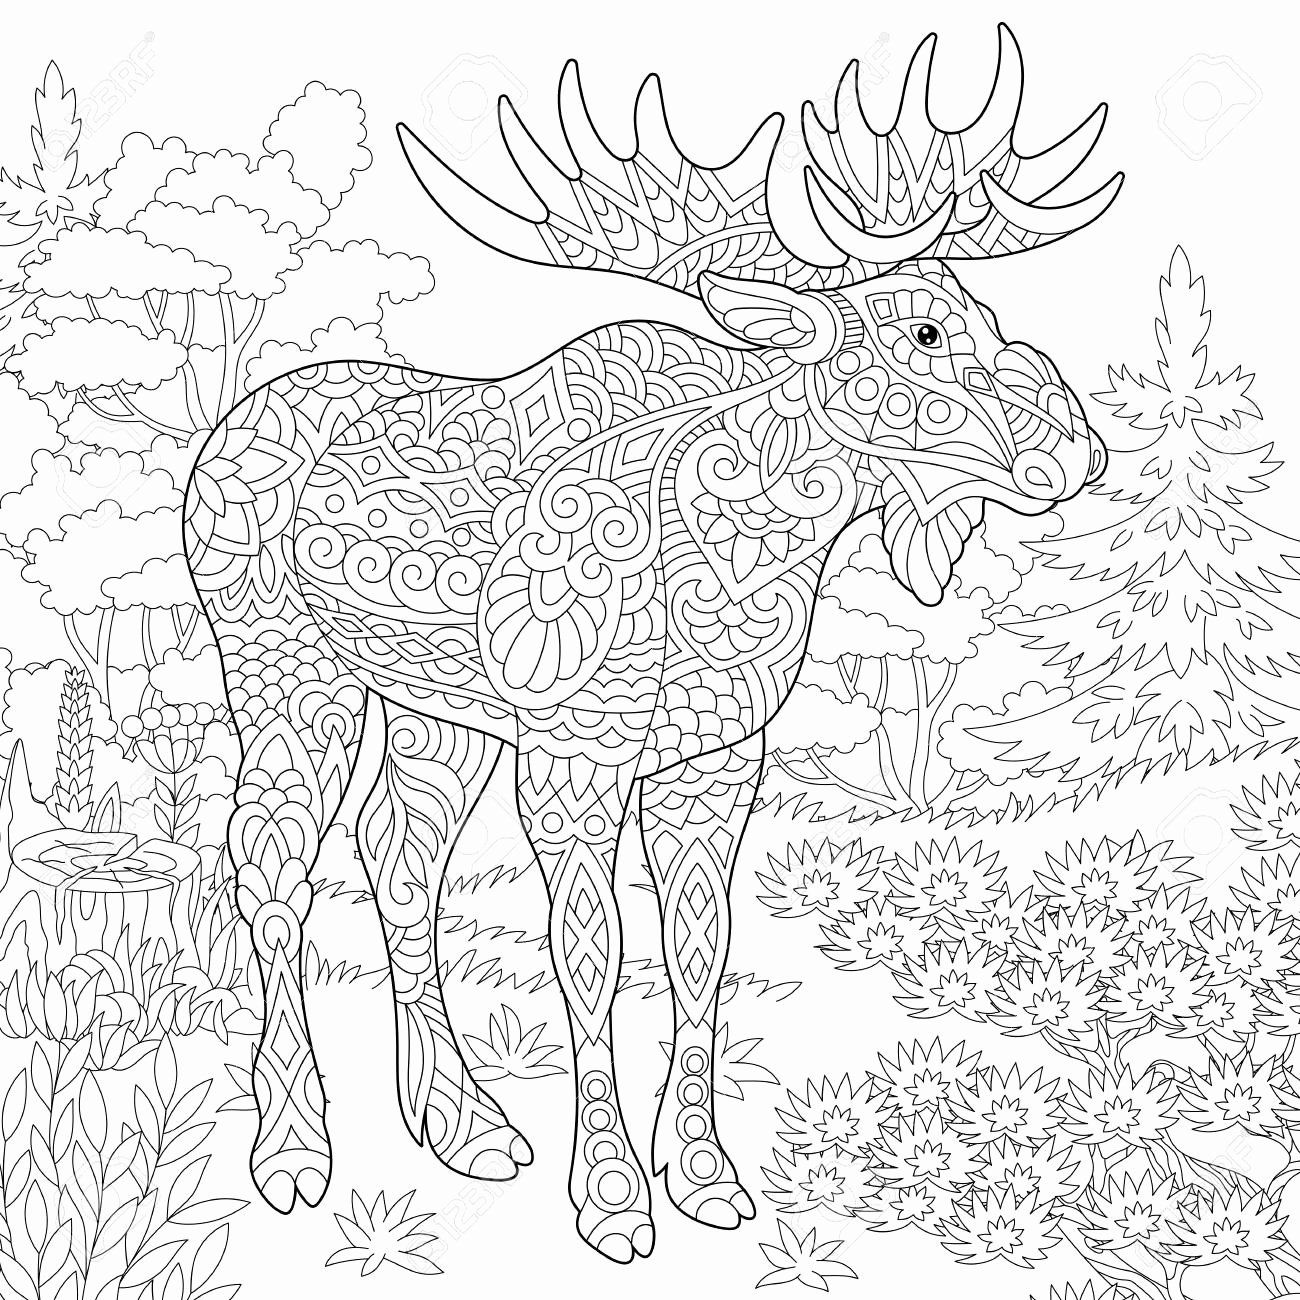 Landscape Coloring Pages To Print In